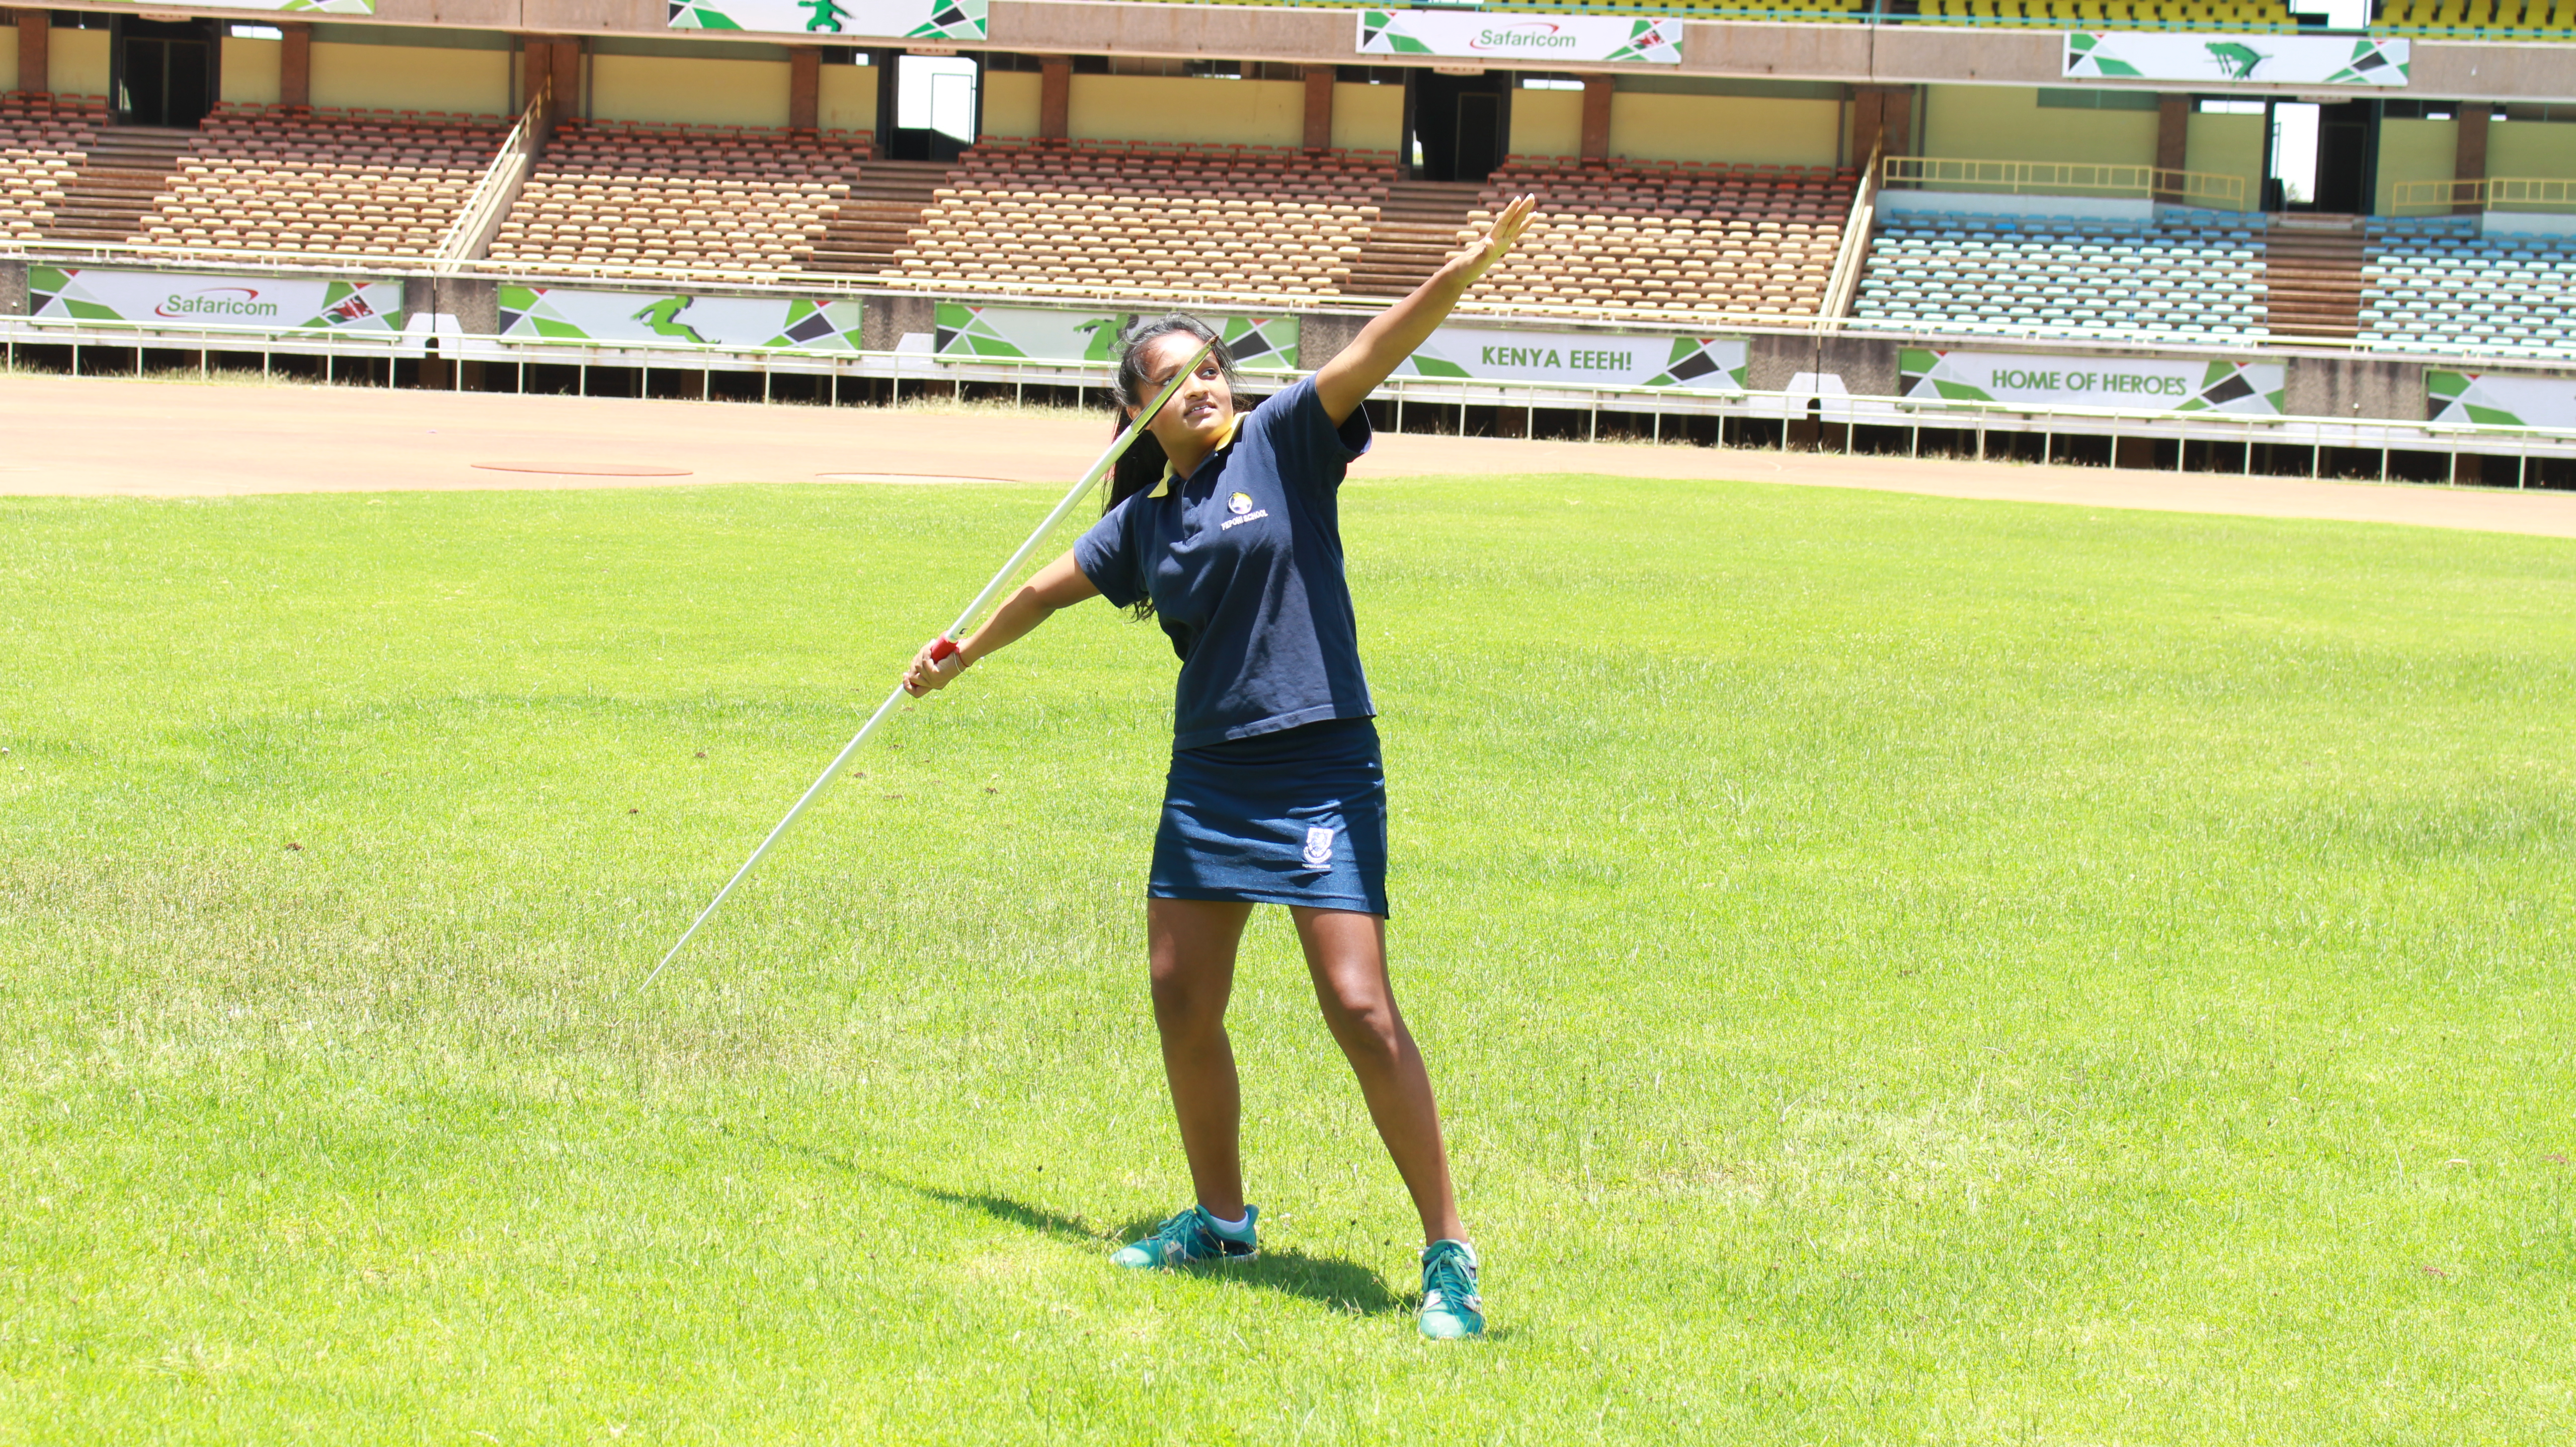 Banita Dodhia says training for the U18 Championships would be impossible without the support of her family. (L. Ruvaga/VOA)